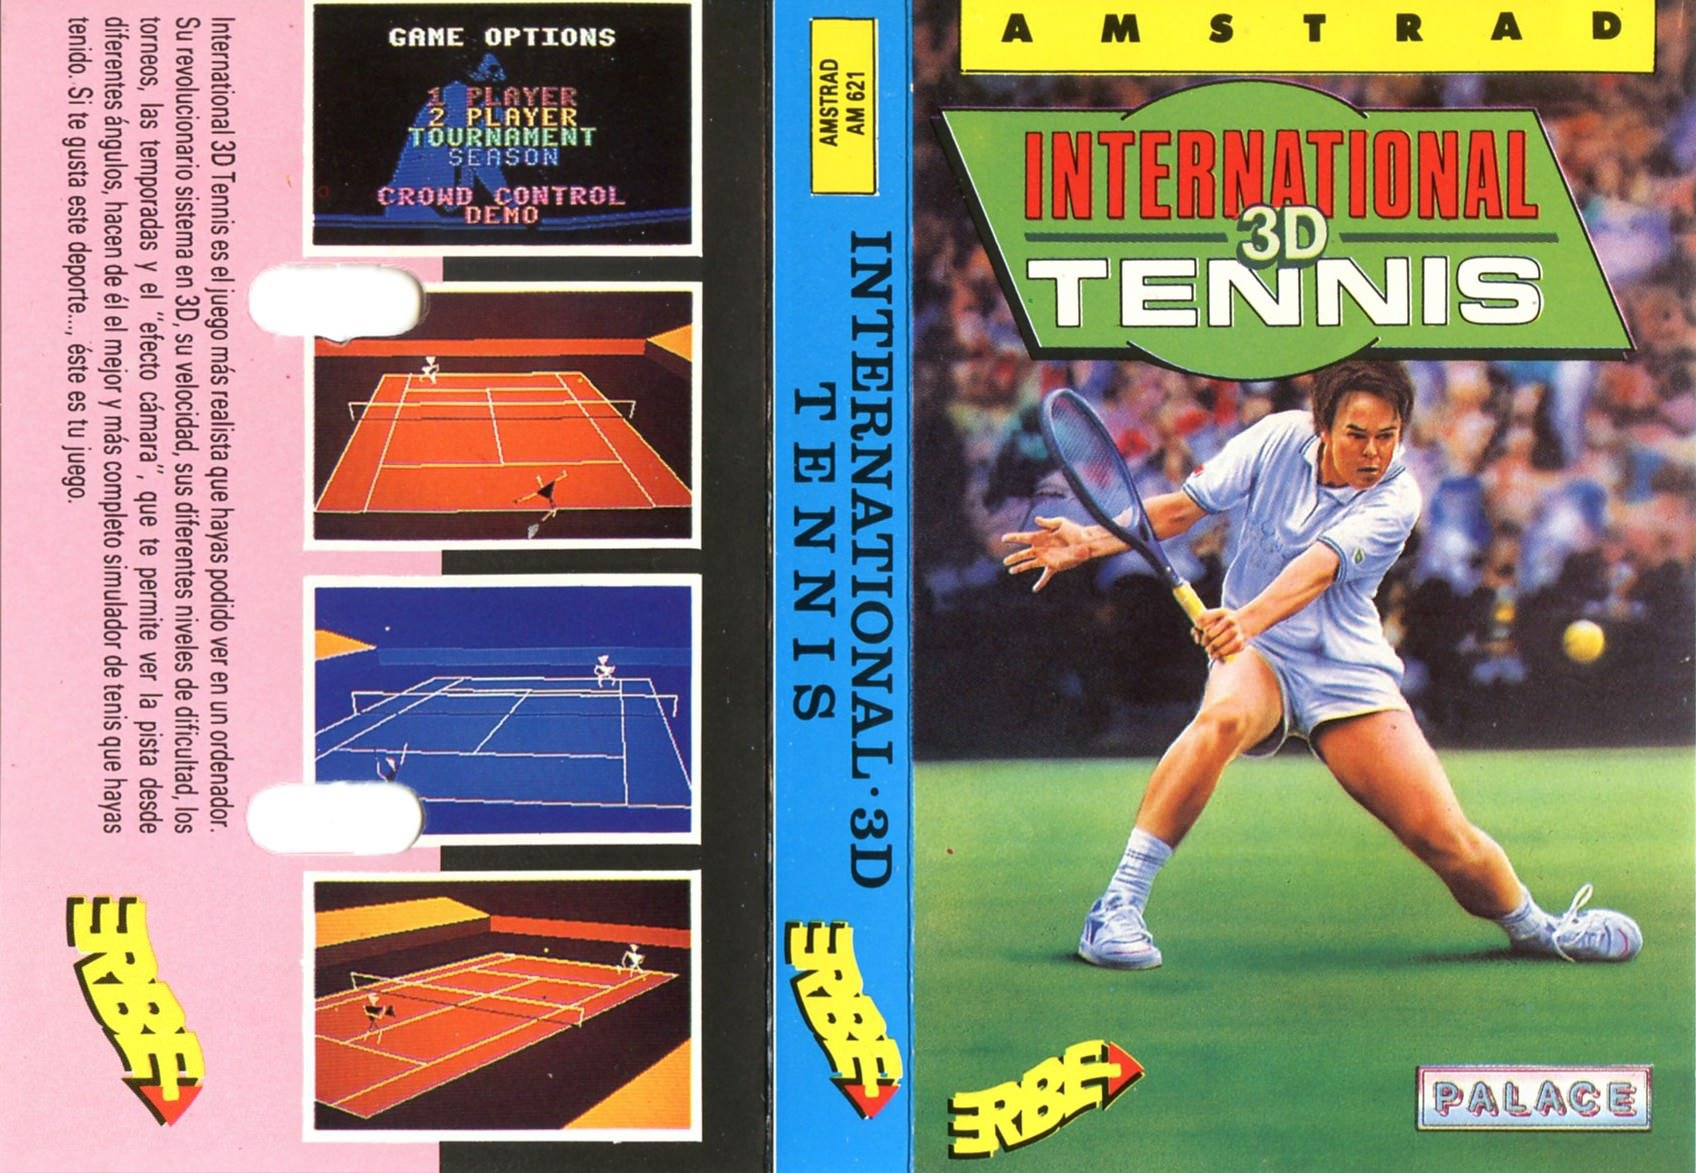 Caratula de International 3d Tennis para Amstrad CPC